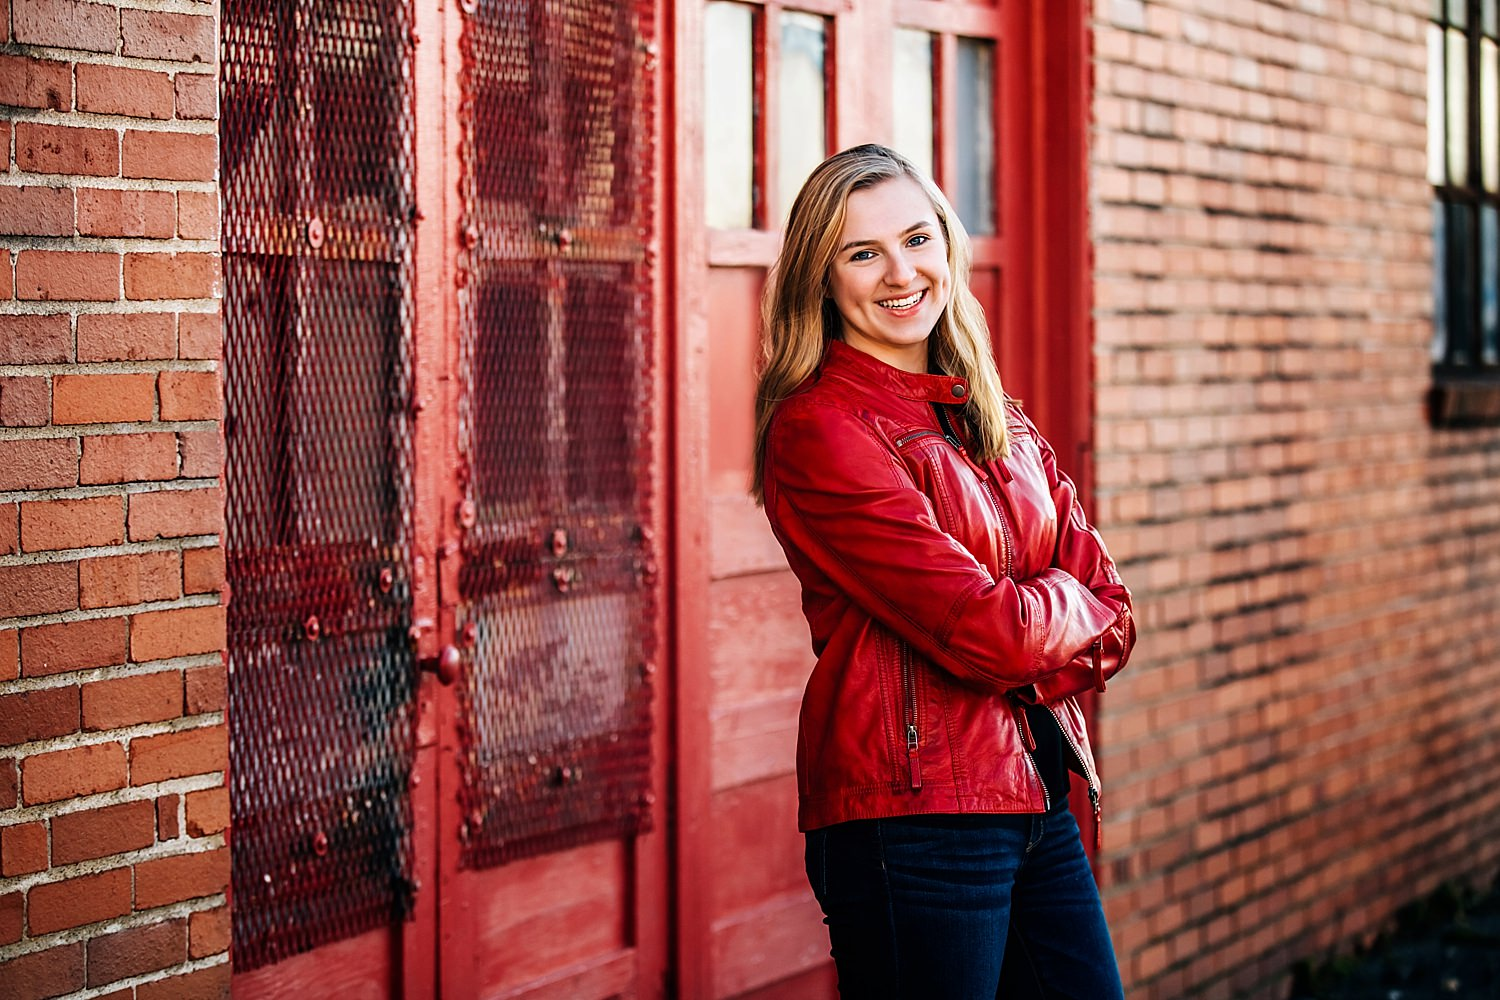 girl posing against red doors wearing red jacket smiling during senior portraits in newark ohio